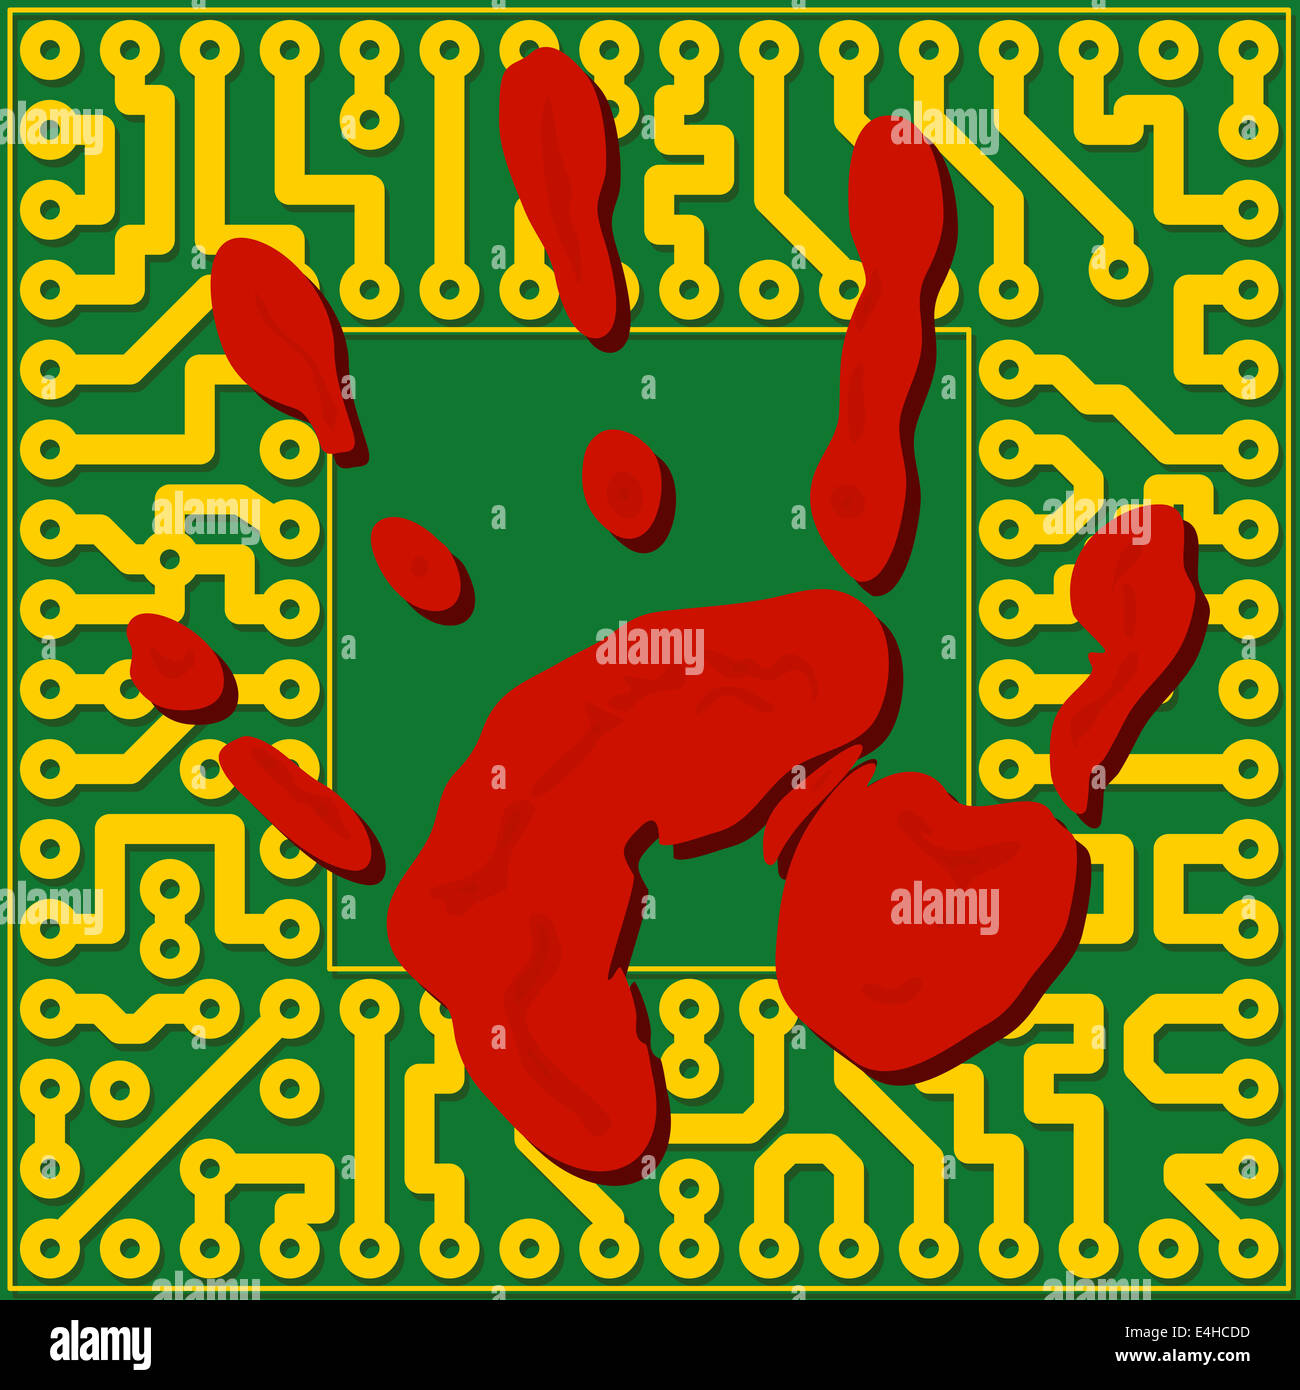 Computer technology fingerprinting. Handprint over the the electronic board - illustration - Stock Image